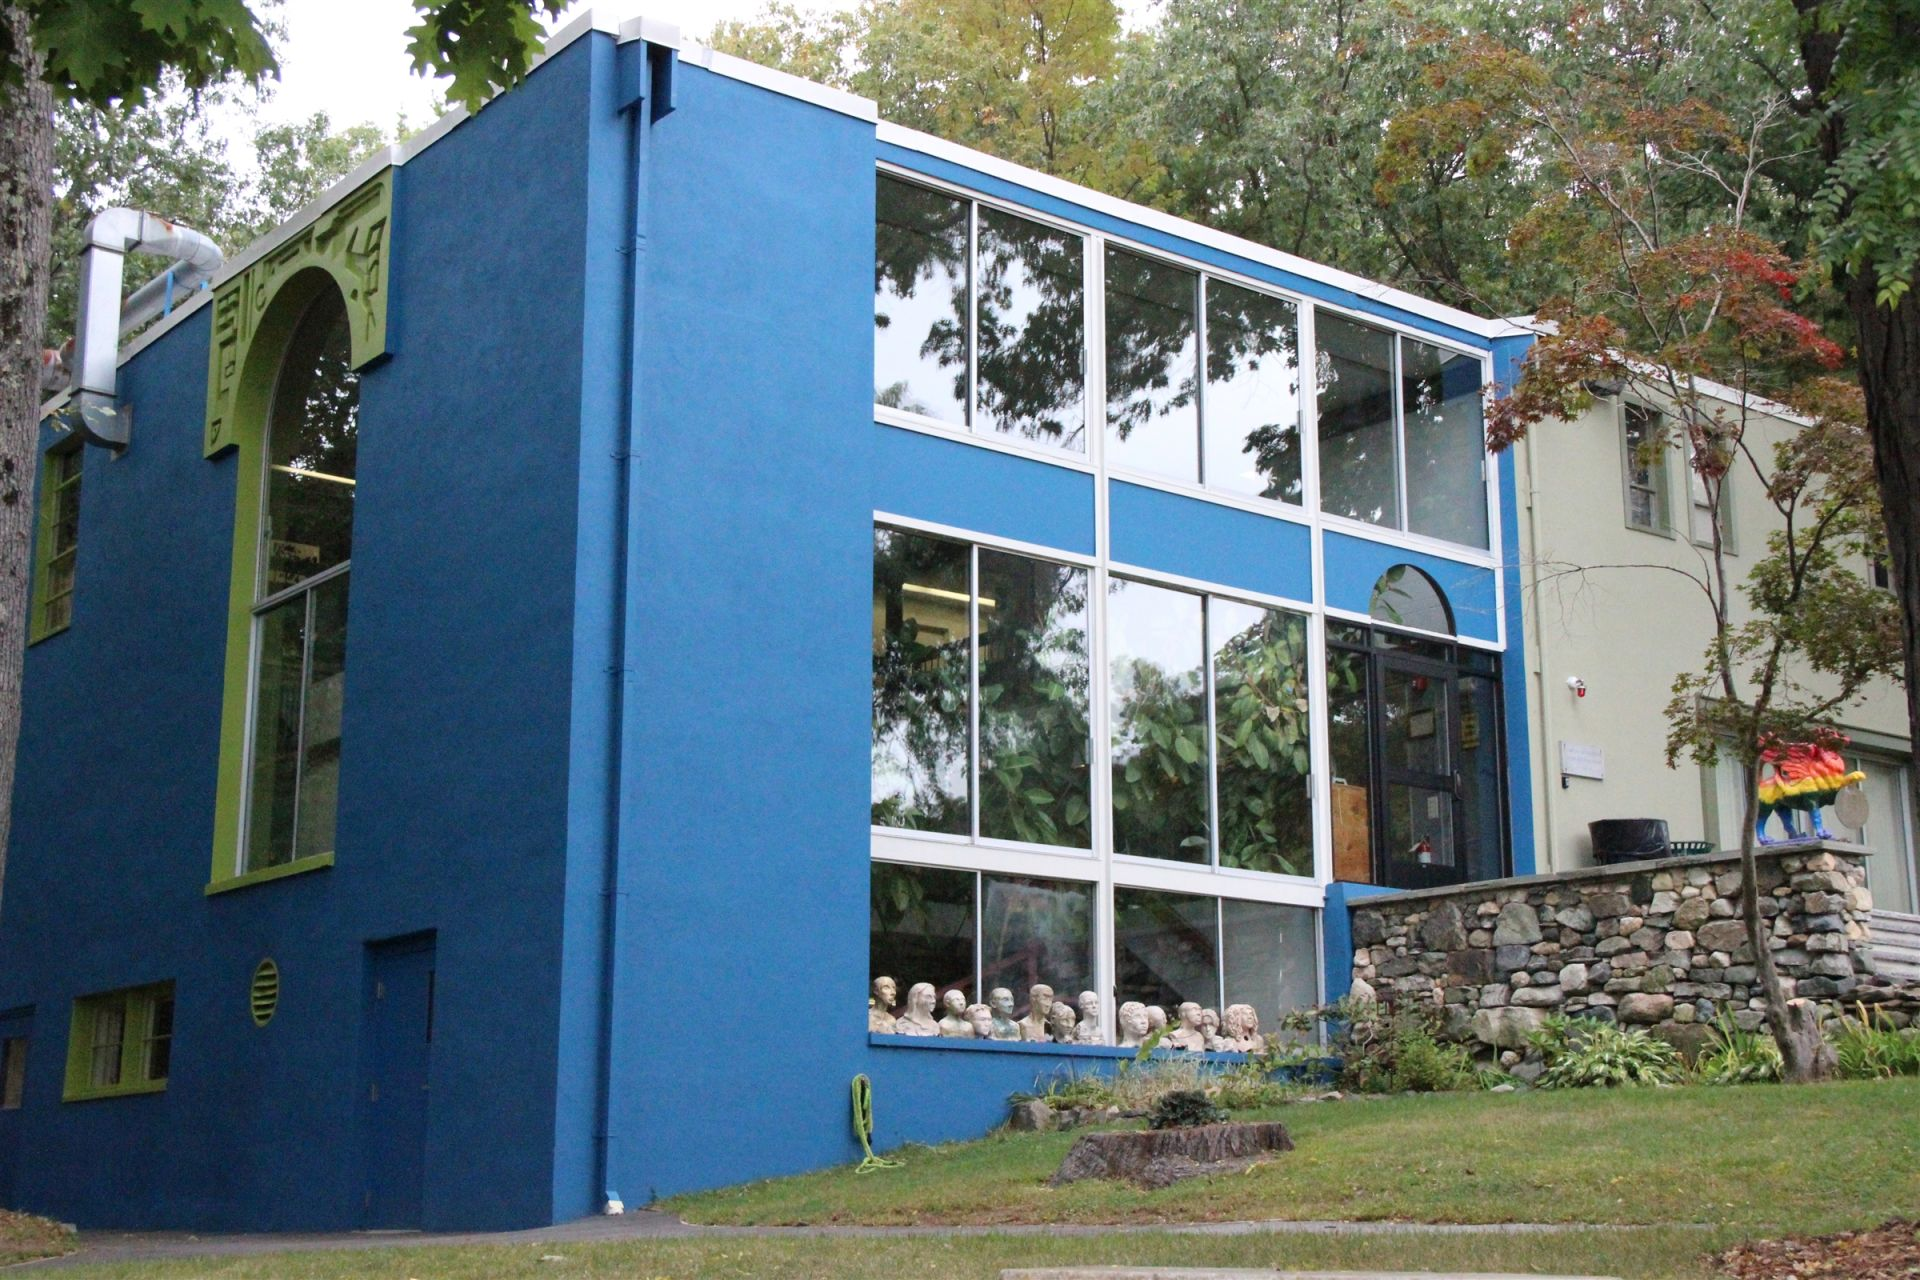 The Art Building provides classroom, equipment, and studio space for the visual arts. The building houses darkrooms, sculpture and pottery studios, classrooms for drawing and painting, as well as the YUM Lab, a digital media laboratory for students interested in taking classes in the digital arts.